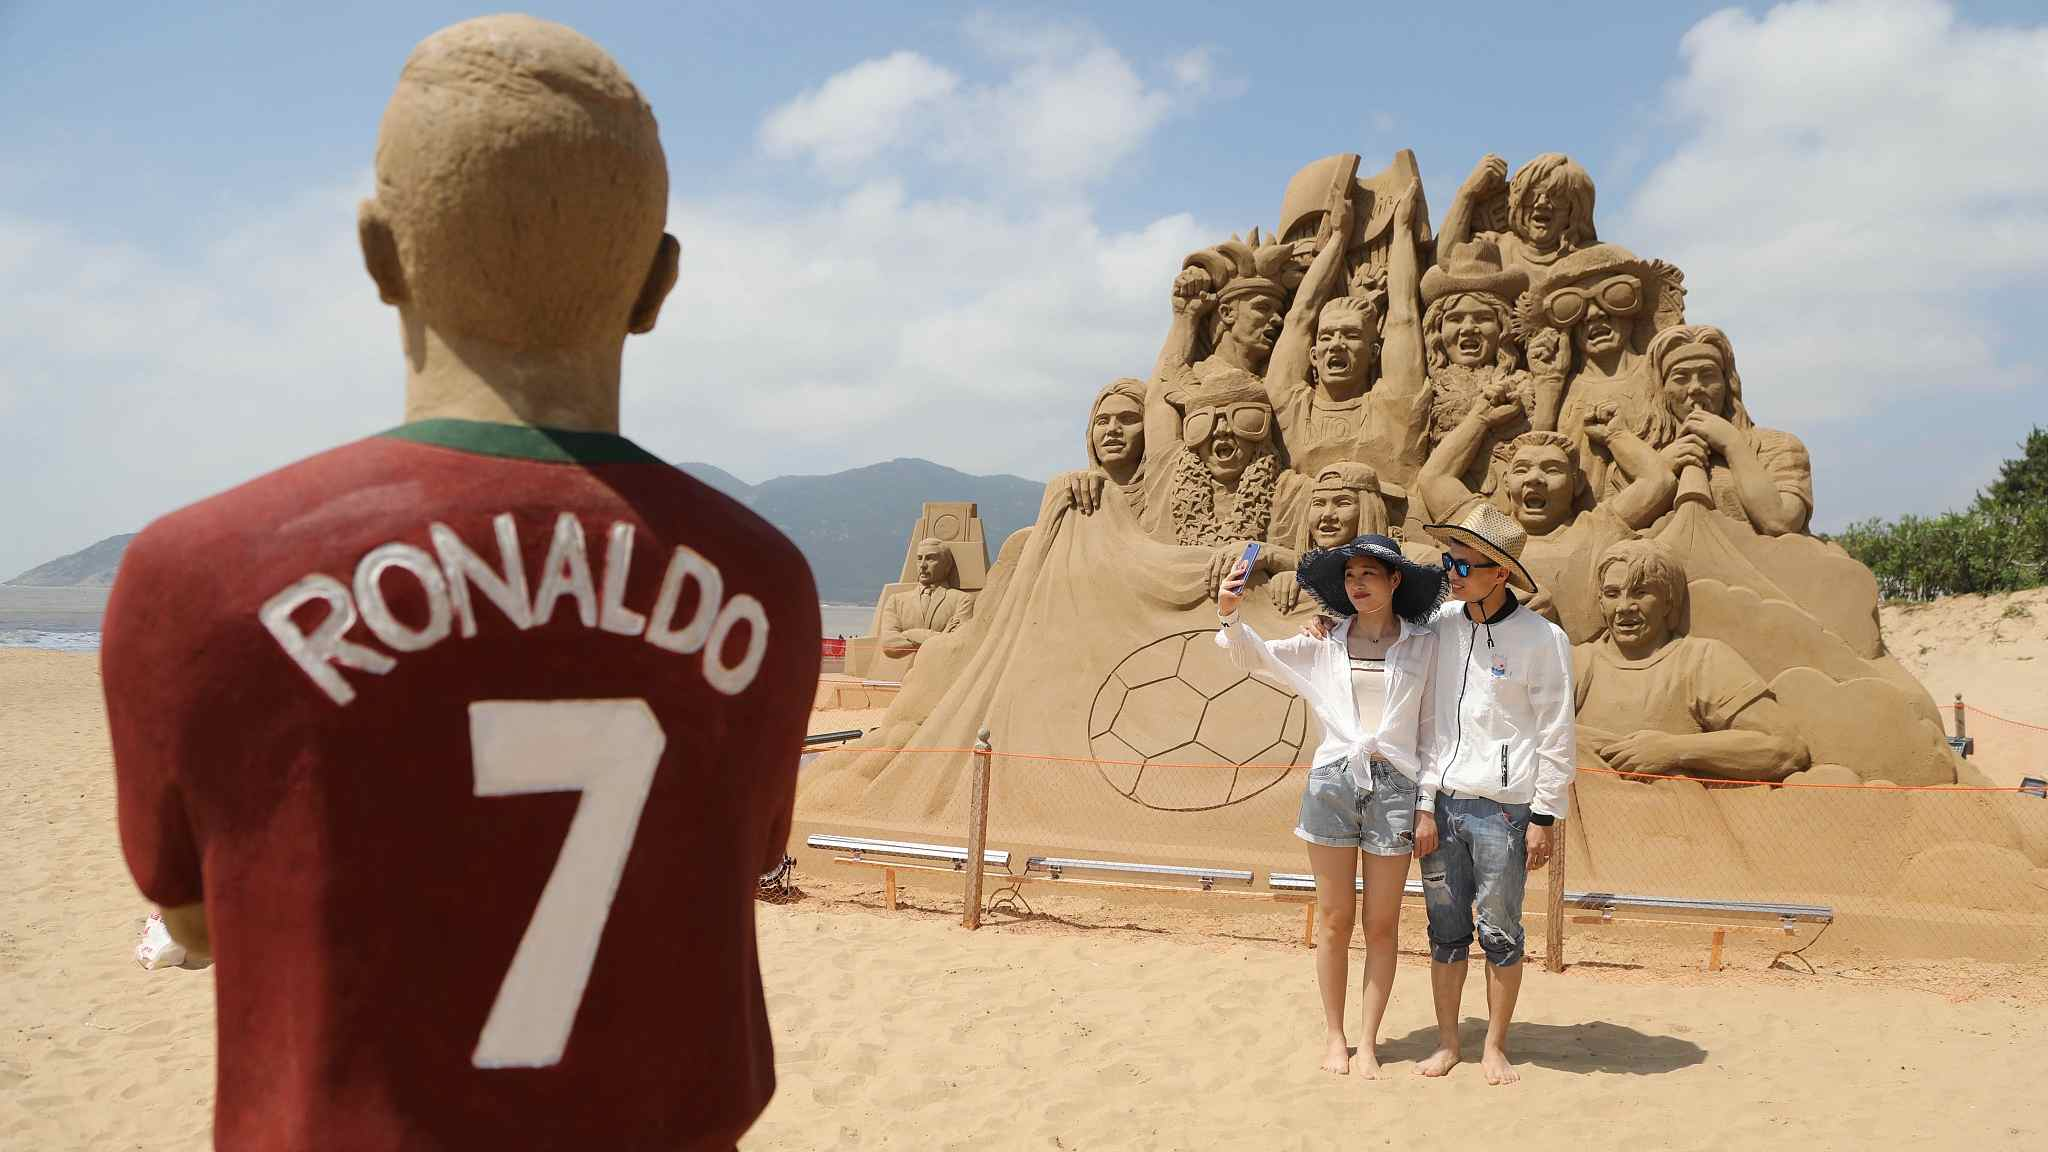 World Cup-themed sand sculptures woo crowd